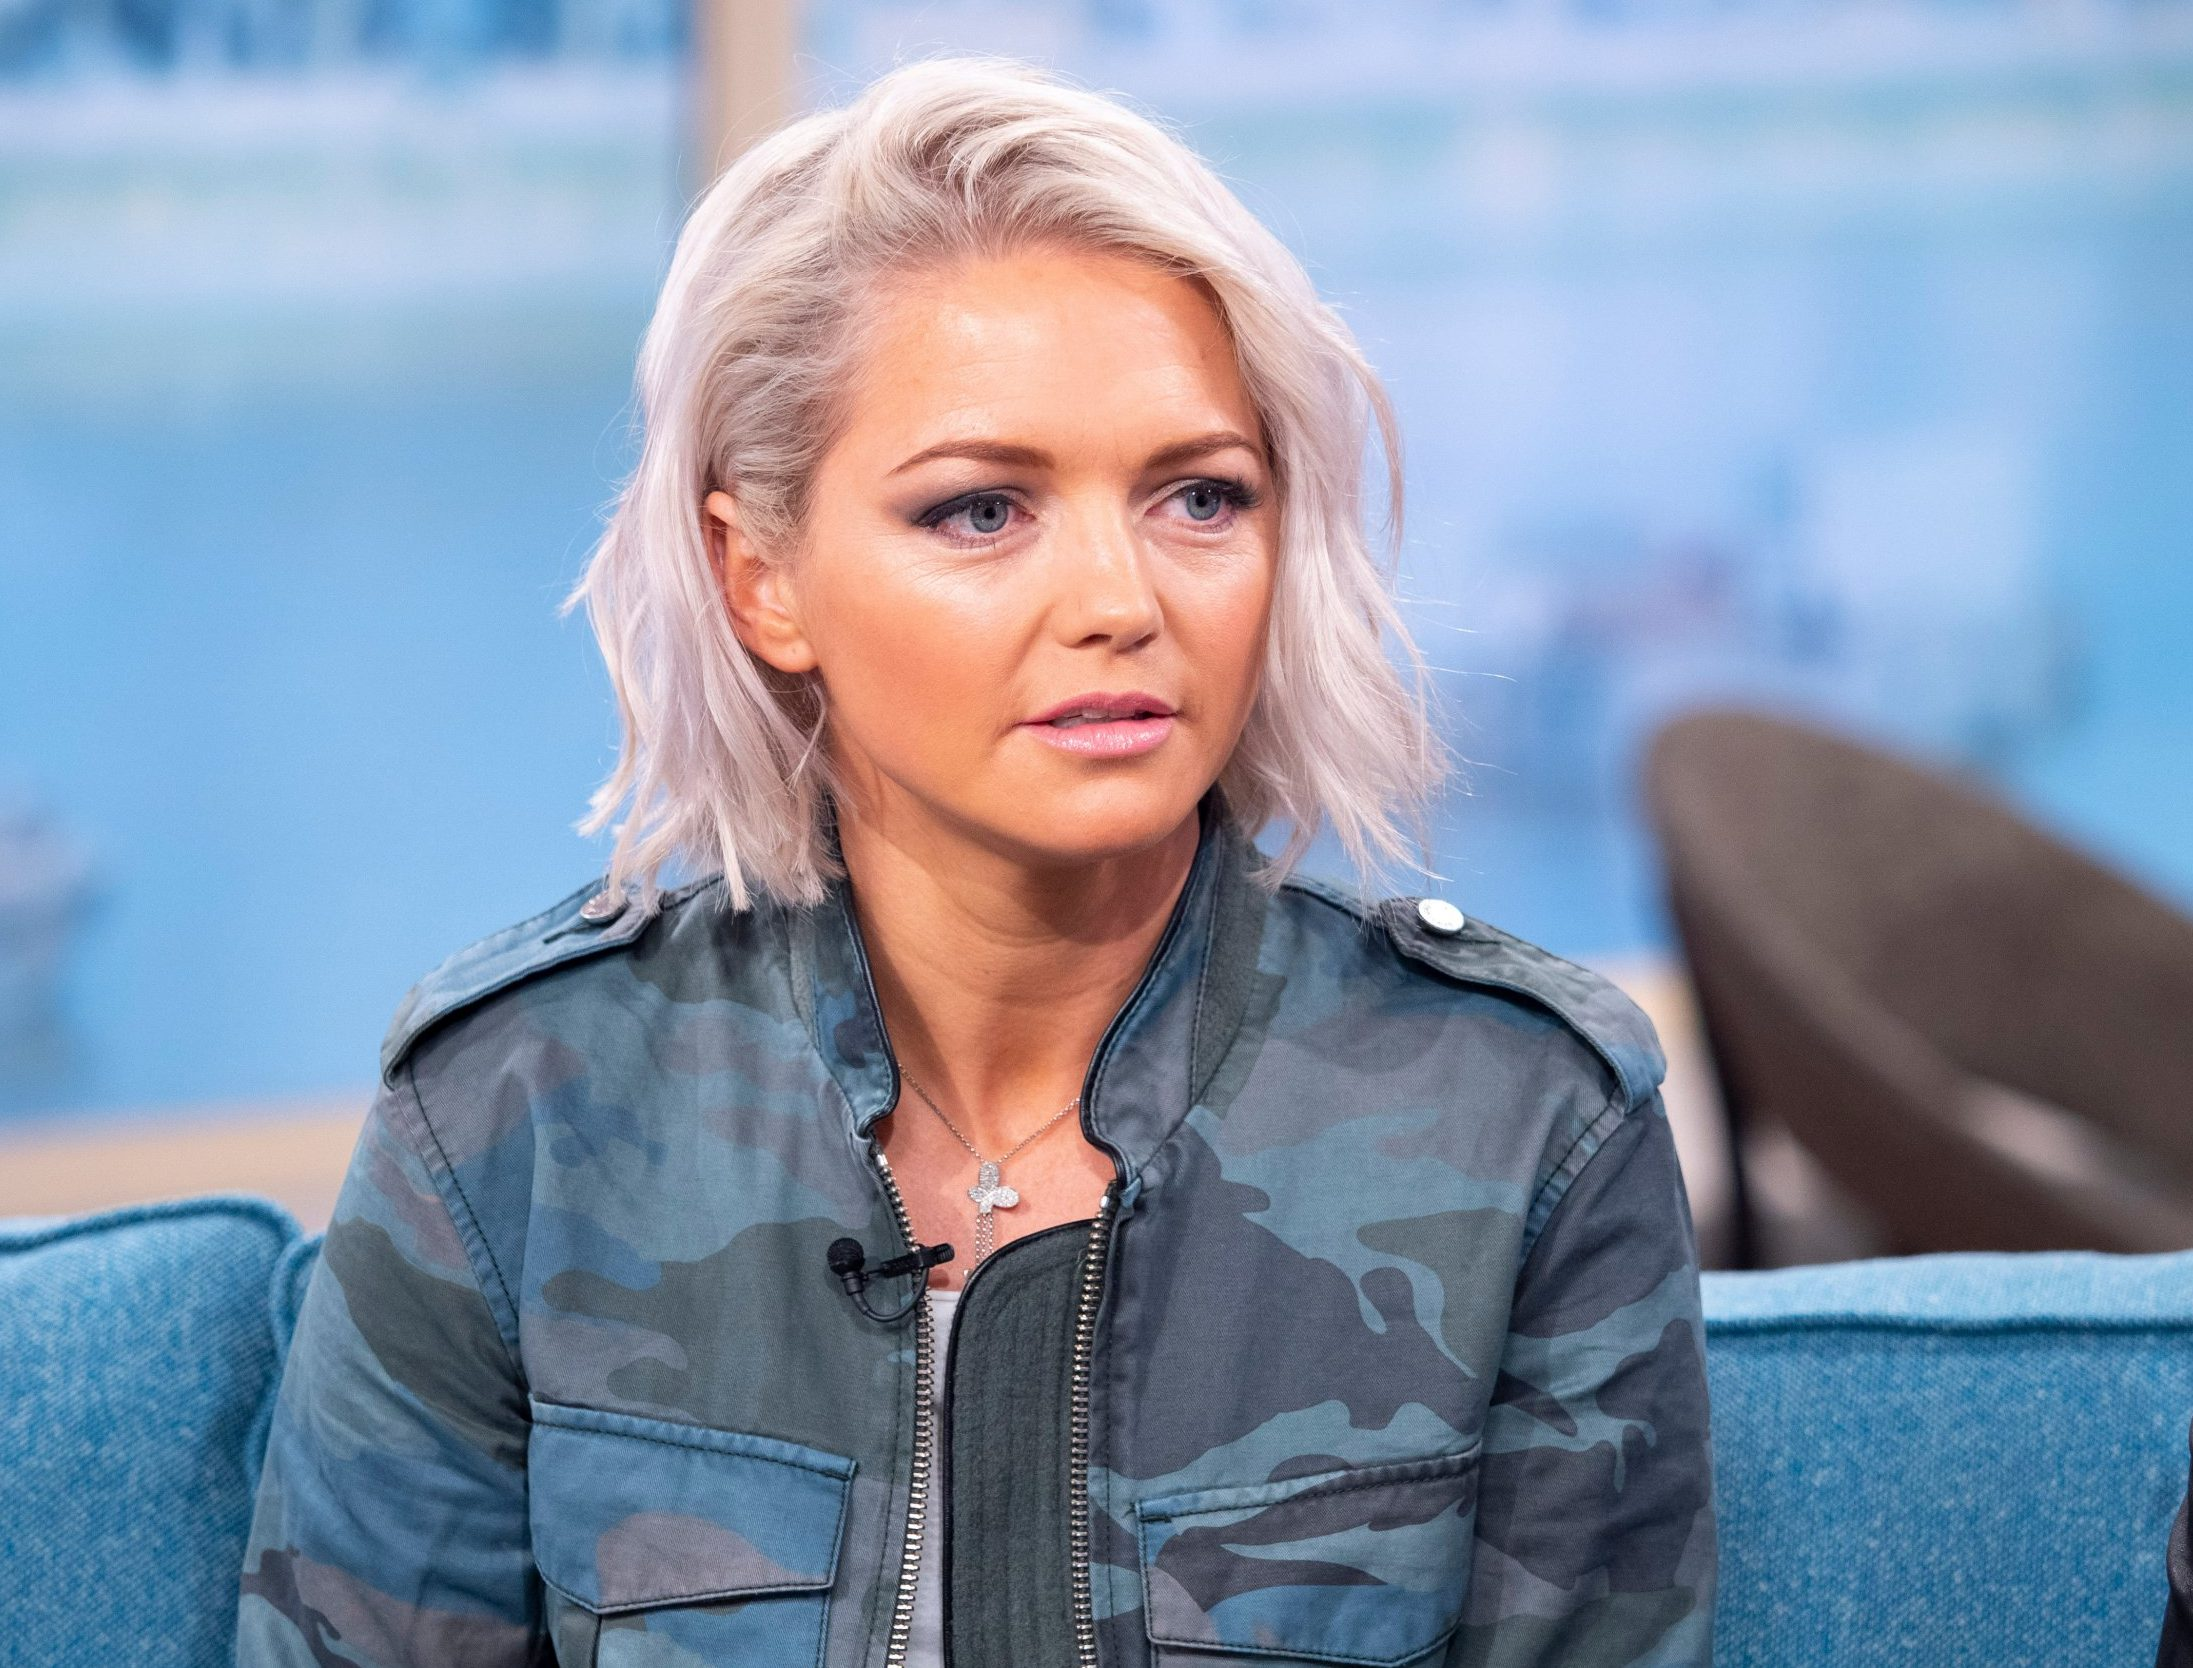 EDITORIAL USE ONLY. NO MERCHANDISING Mandatory Credit: Photo by Ken McKay/ITV/REX/Shutterstock (9633712j) Hannah Spearritt 'This Morning' TV show, London, UK - 16 Apr 2018